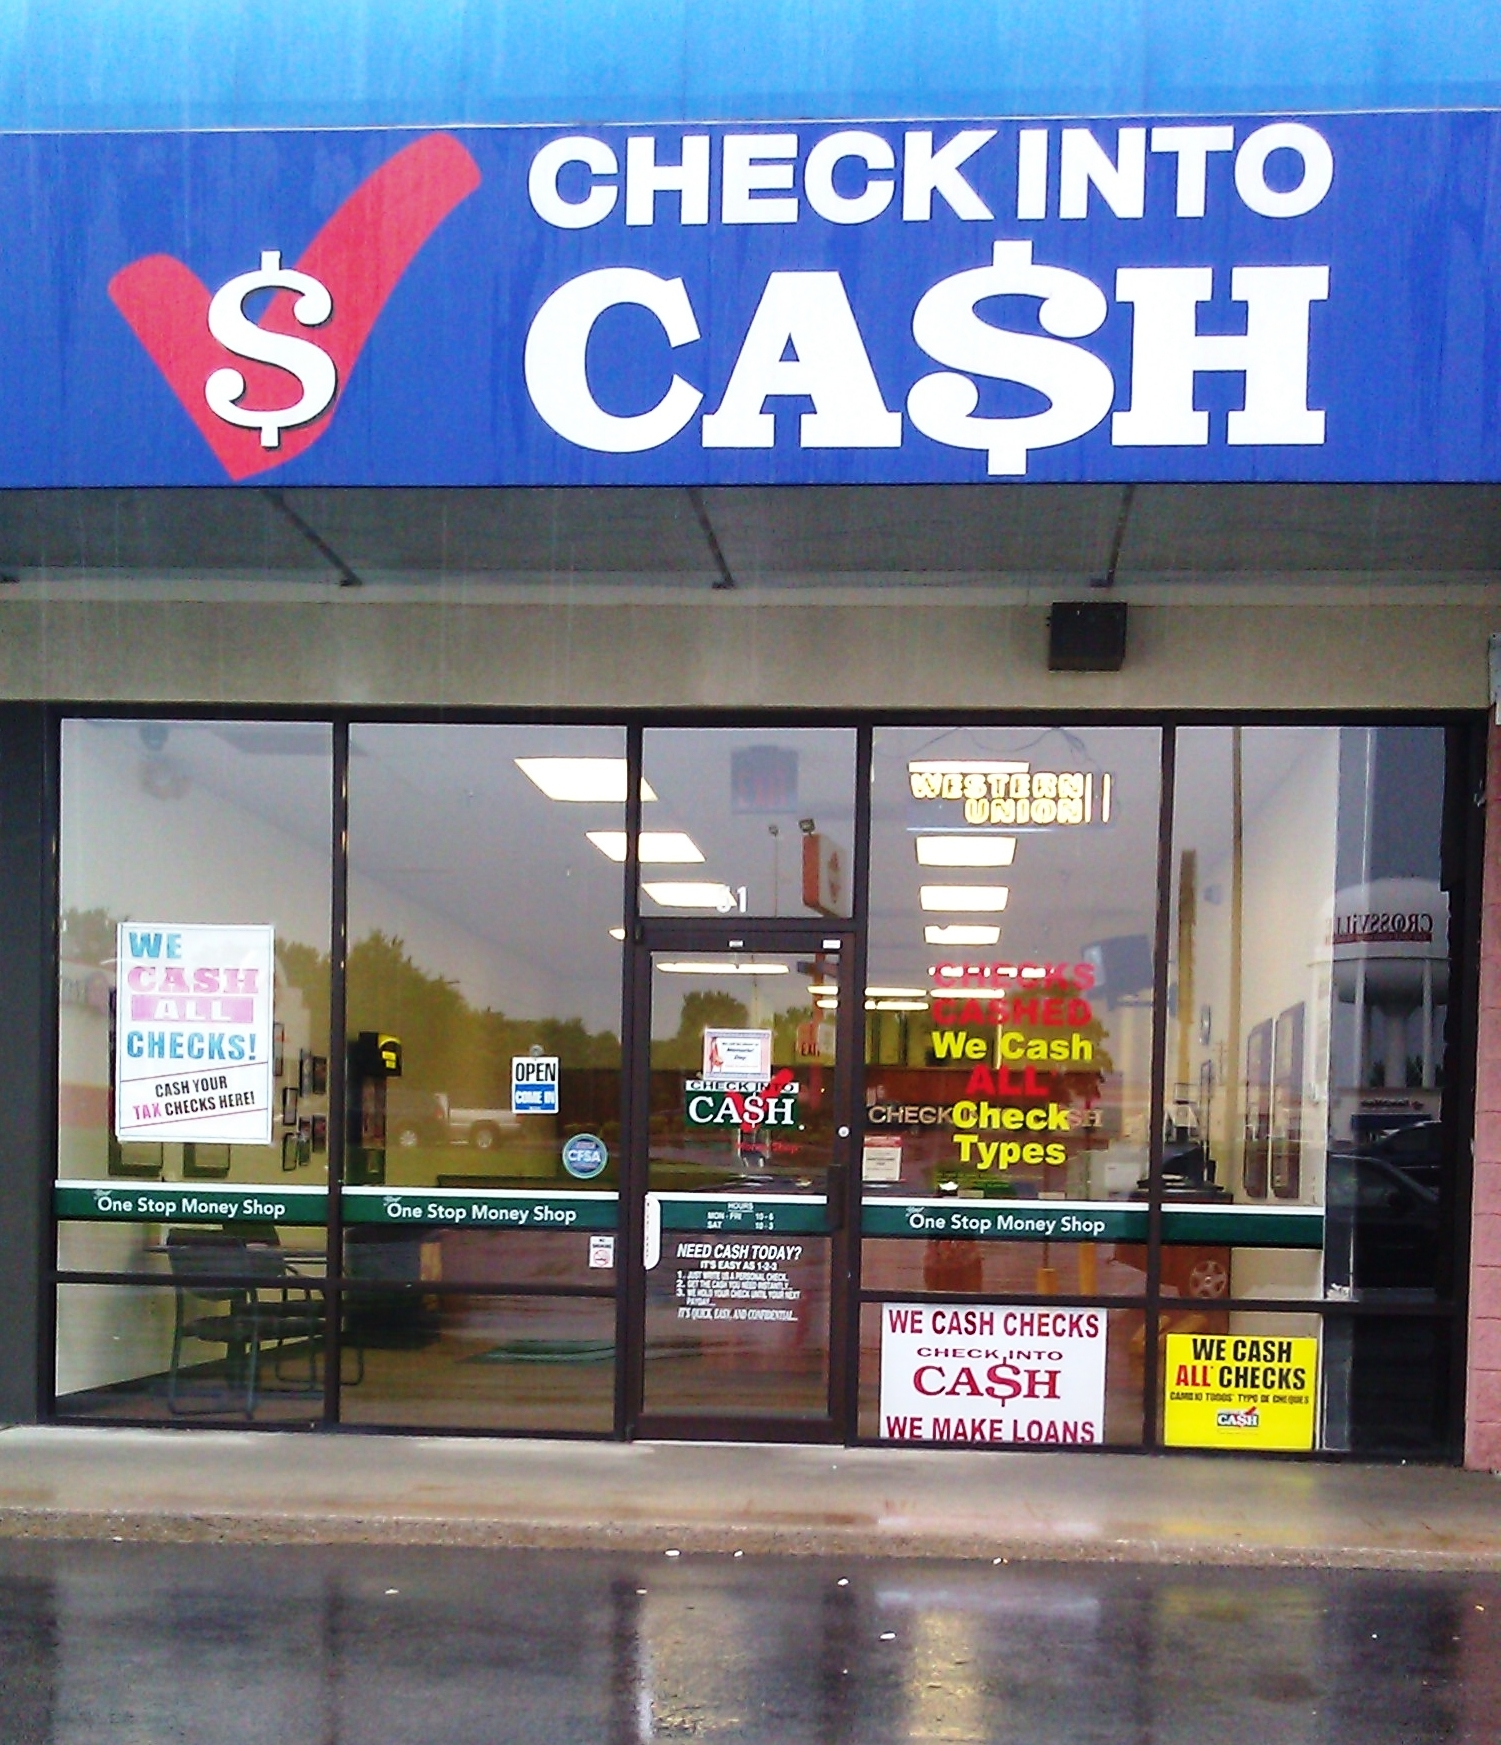 Payday loans in manchester nh picture 1